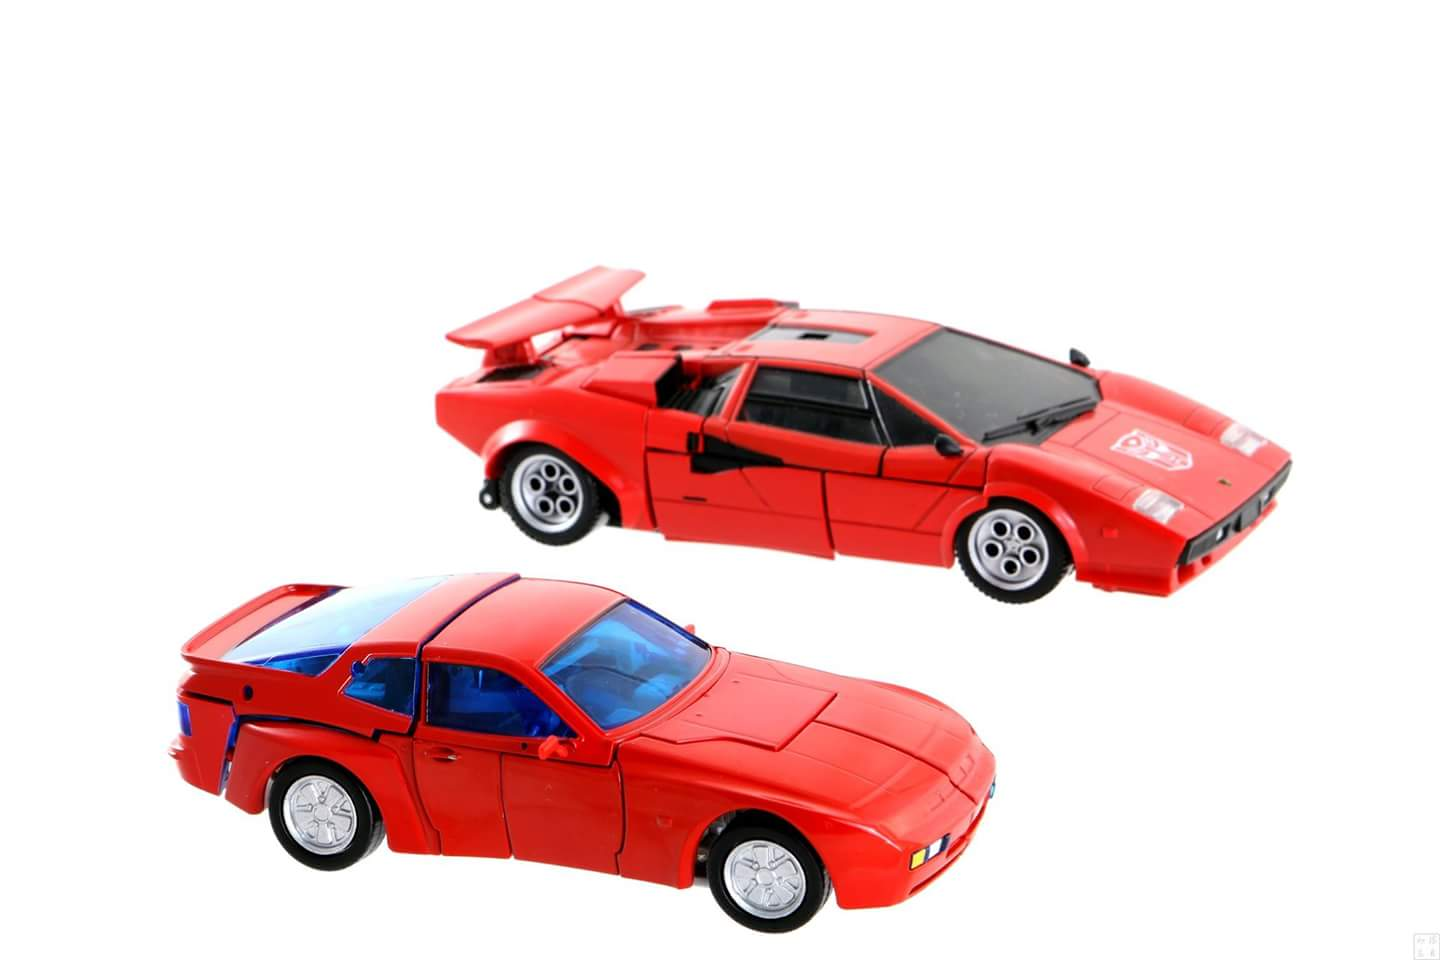 [ACE Collectables] Produit Tiers - Minibots MP - ACE-01 Tumbler (aka Cliffjumper/Matamore), ACE-02 Hiccups (aka Hubcap/Virevolto), ACE-03 Trident (aka Seaspray/Embruns) 3gayIG0y